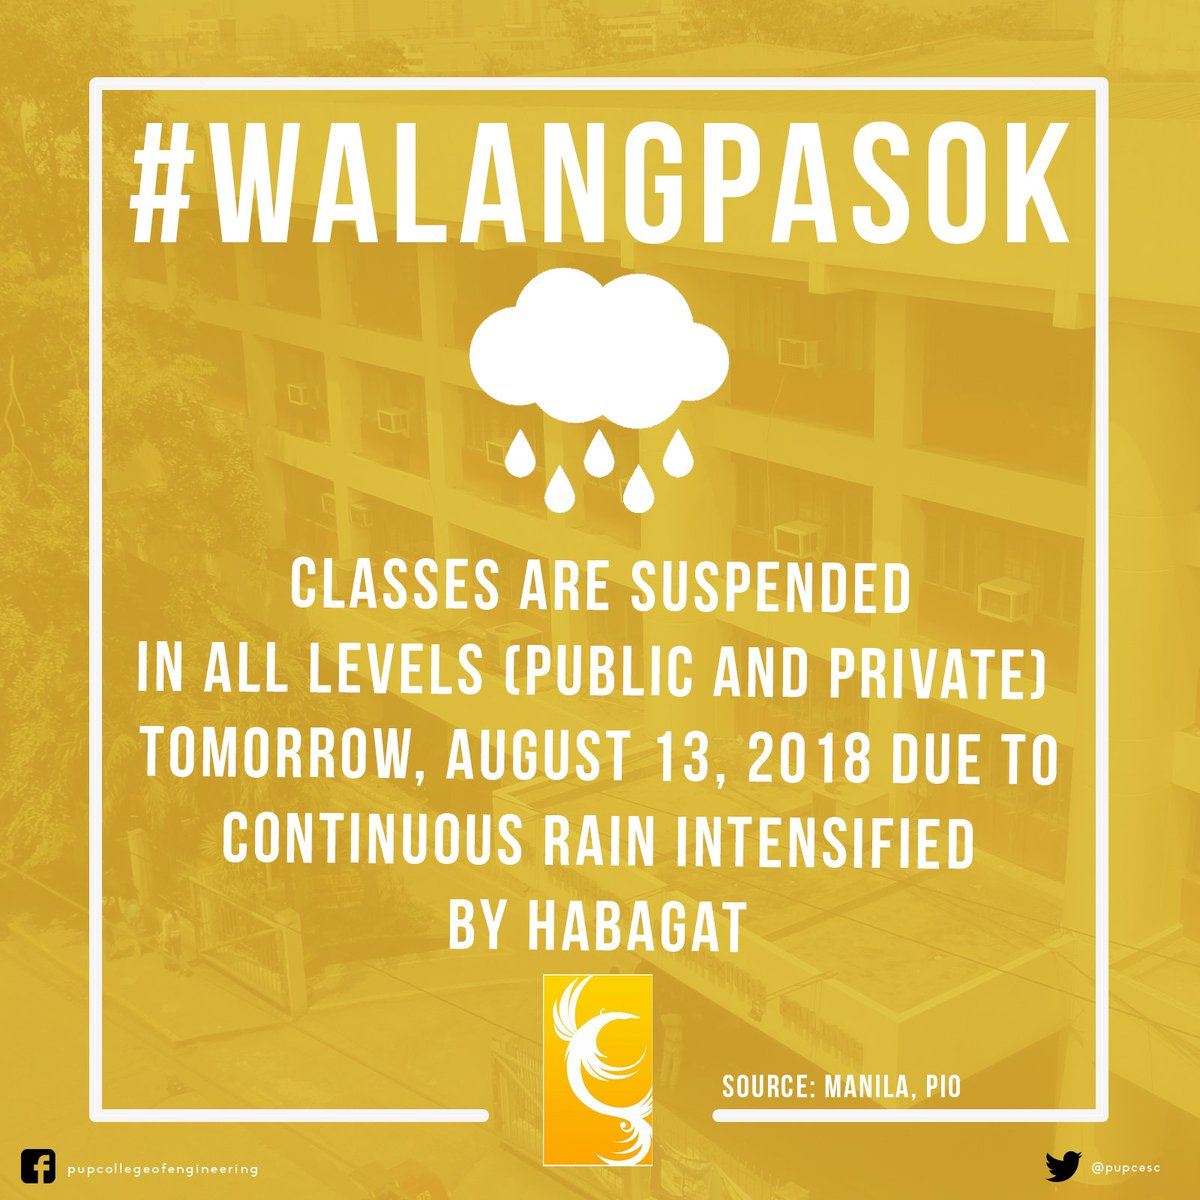 JUST IN: Classes in All Levels tomorrow (August 12, 2018) are now suspended due to continous downpour brought by Habagat. Stay safe mga ka-CEAns! (Source: Manila PIO) <br>http://pic.twitter.com/ou8mjtRnCv